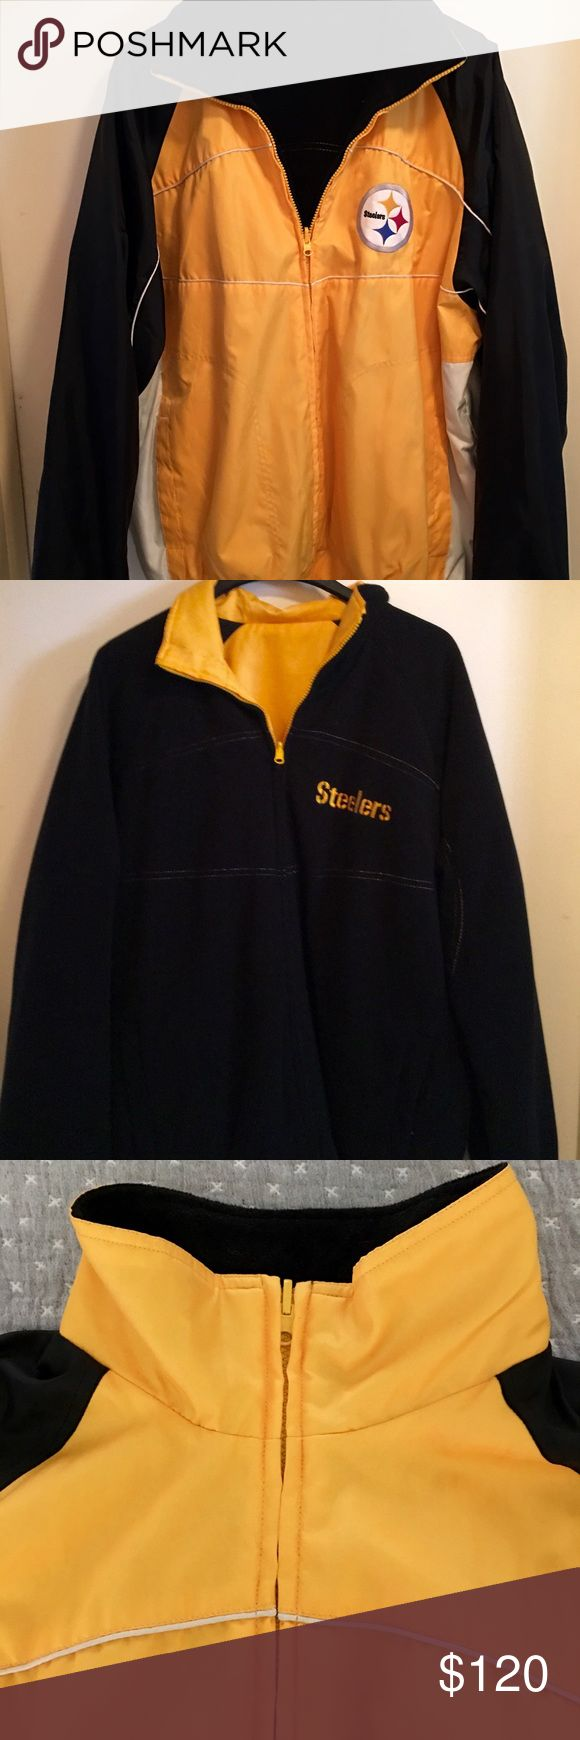 """Men's NFL STEELERS jacket size large Men's size large - NFL STEELERS jacket. Durable yellow outer shell with steelers logo and pockets on one side - reverses to black fleece with STEELERS logo and pockets as well. Zipper is fully reversible. New, - pre-owned but not pre-used! I purchased jackets for my husband (in another listing) and I but have never worn them due to the warm winters here in Florida. Measurements on pictures - another listing that says """"not for sale"""" NFL Jackets & Coats…"""